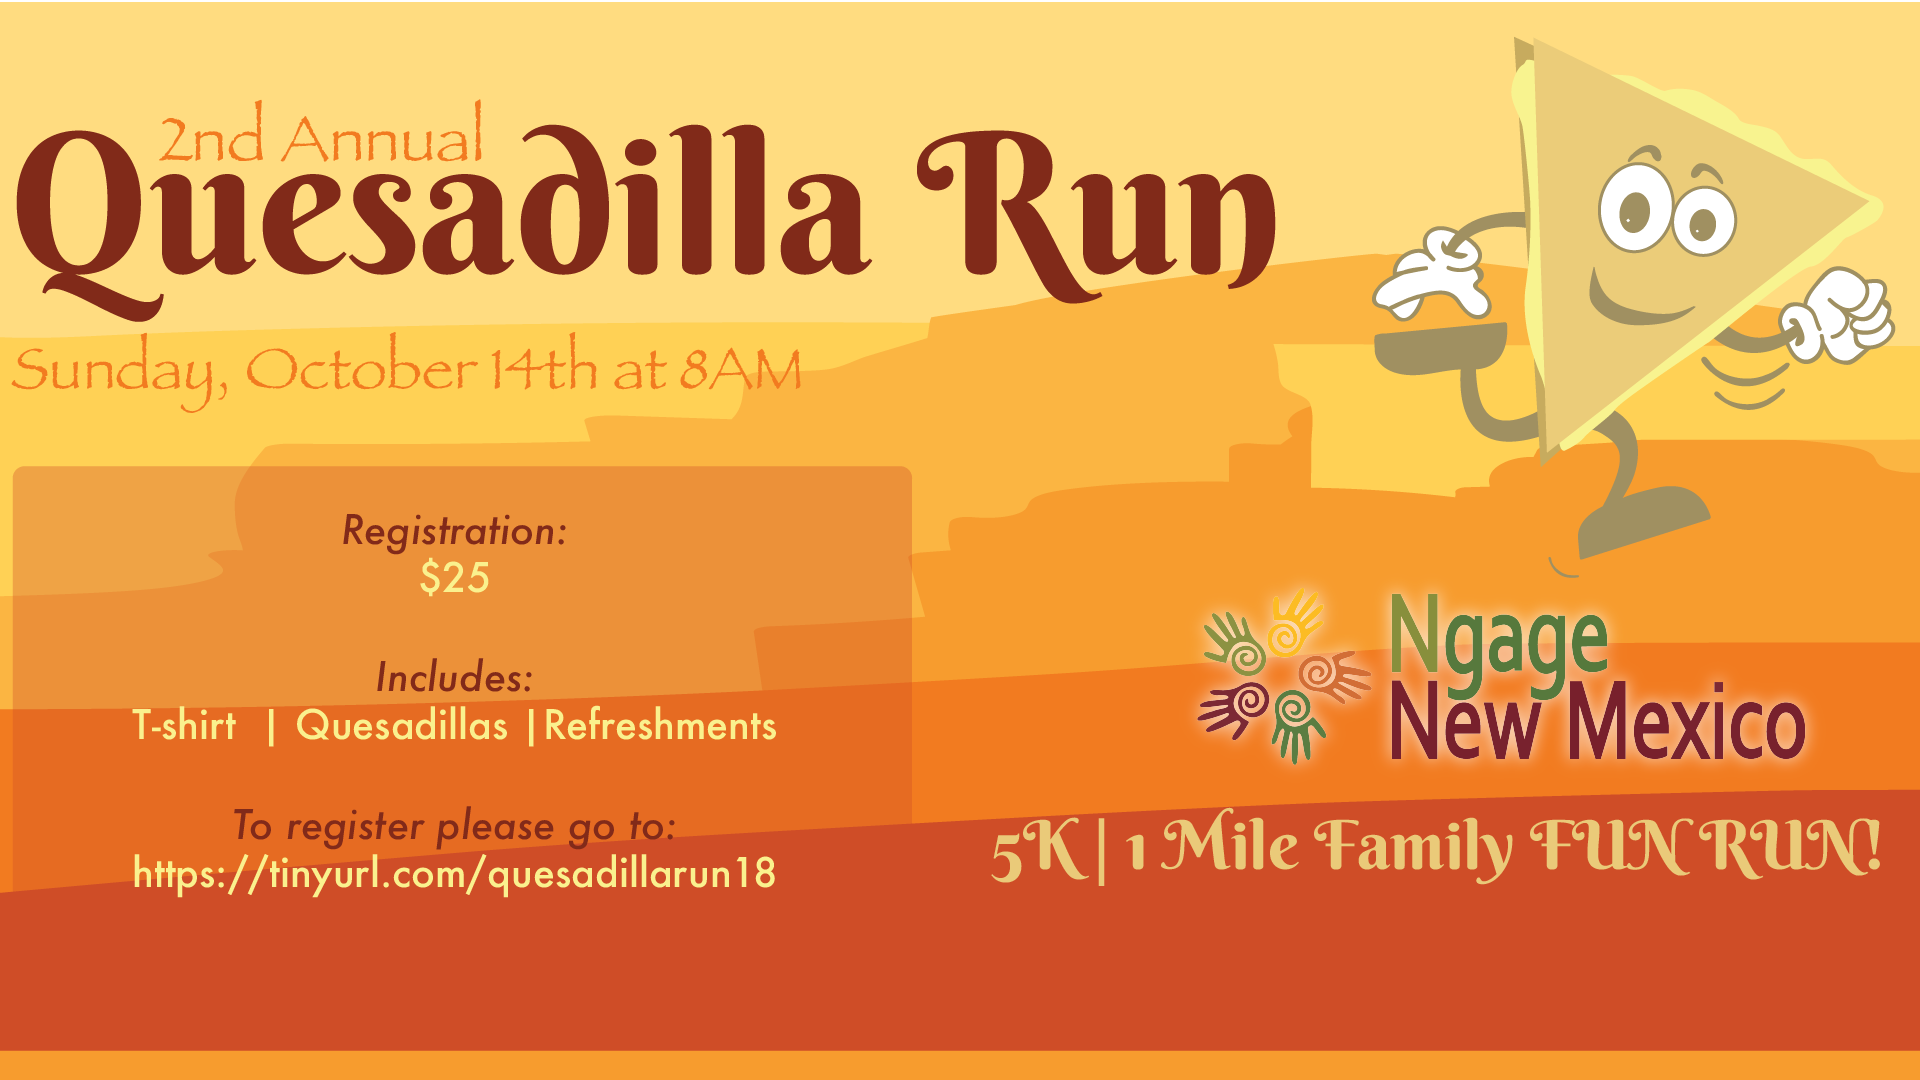 Ngage NM to host its second annual quesadilla run